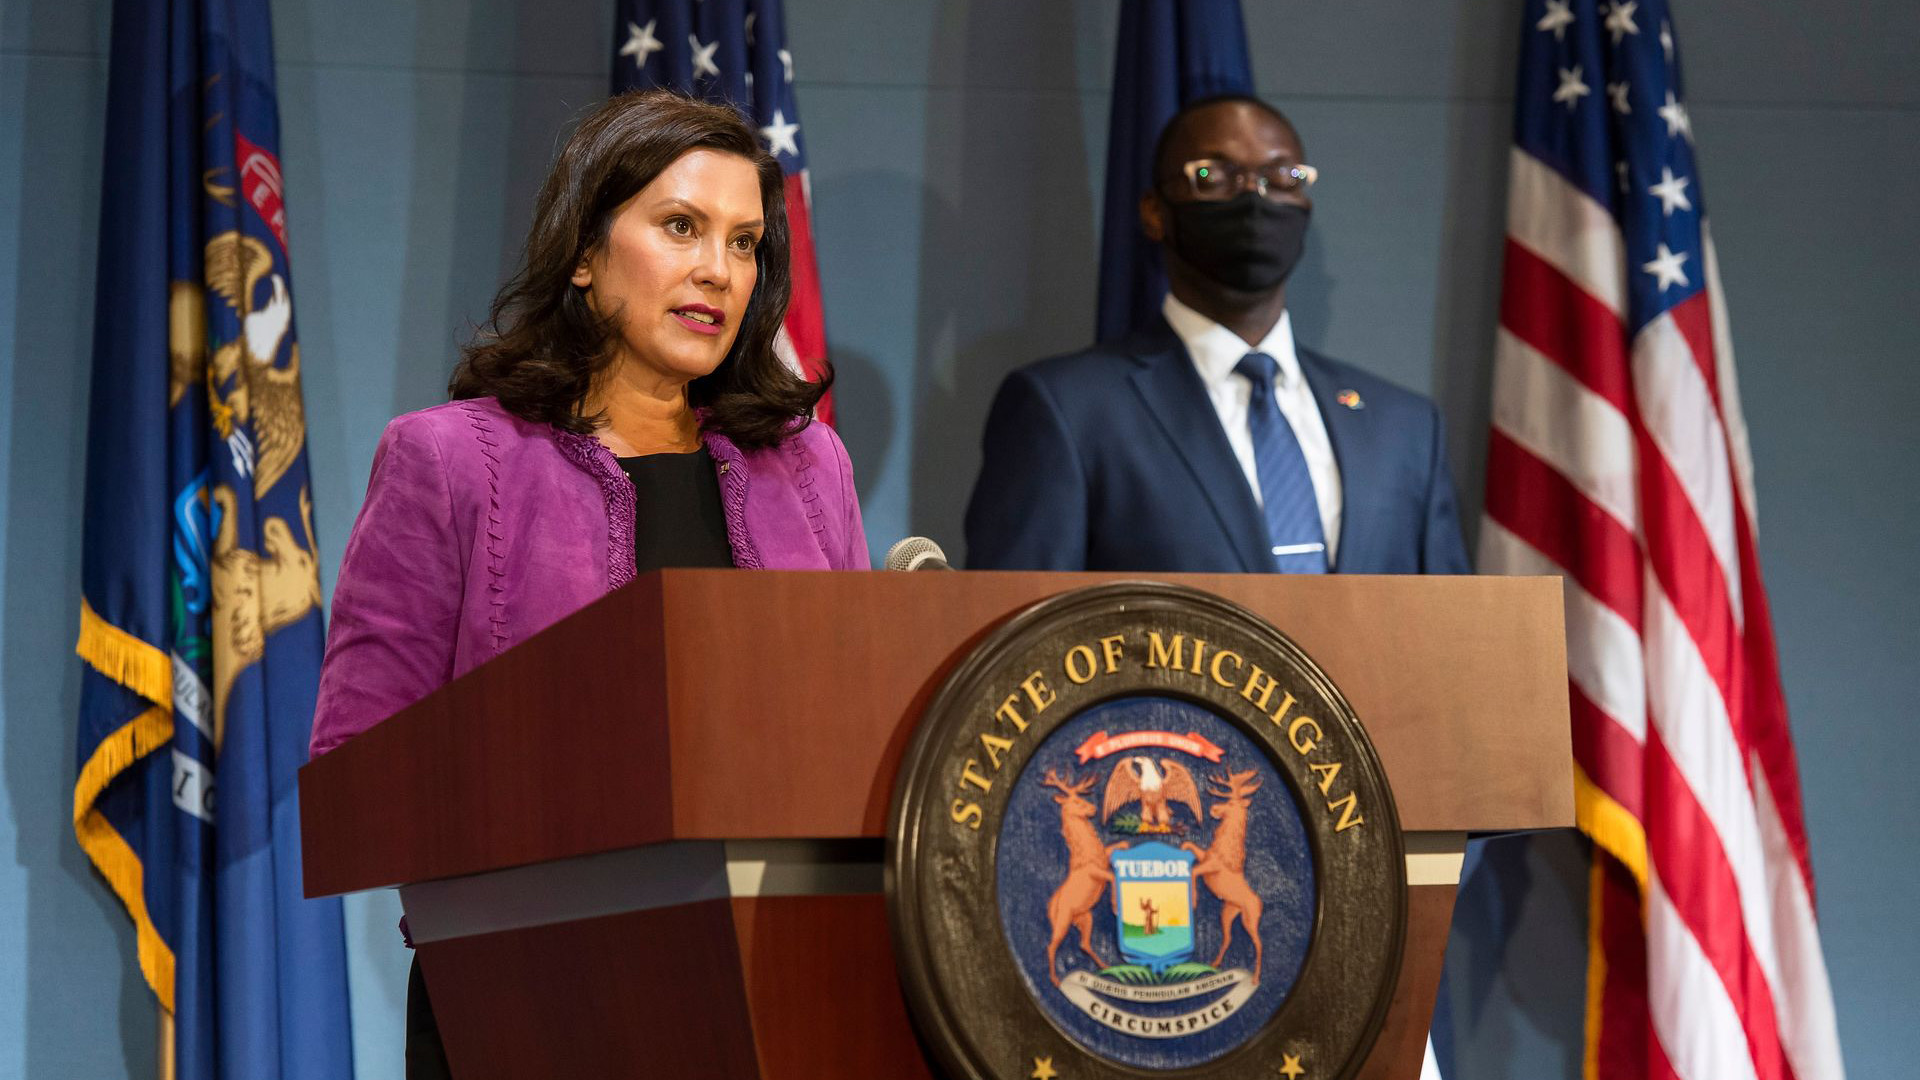 Masks are a Must for 2 and Up, New Executive Order From Governor Whitmer